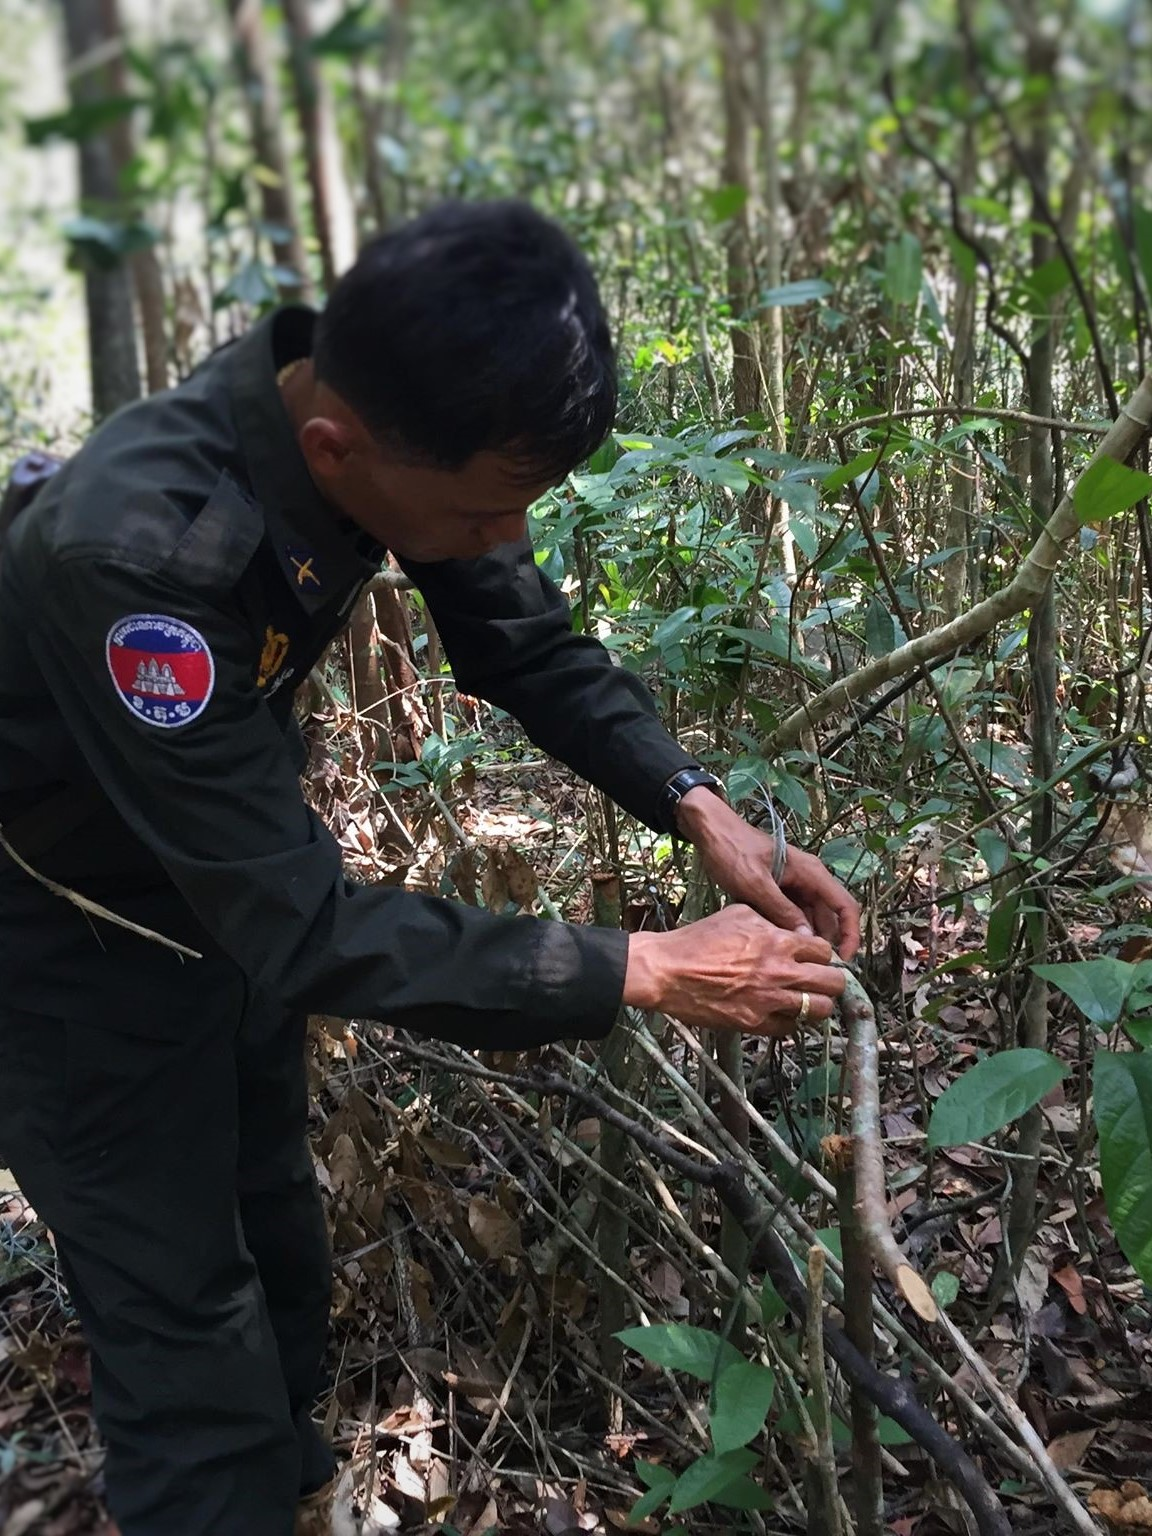 ban snares Call for ban of snares – Dhole caught in snares graphic content snares annimal traps Cambodia